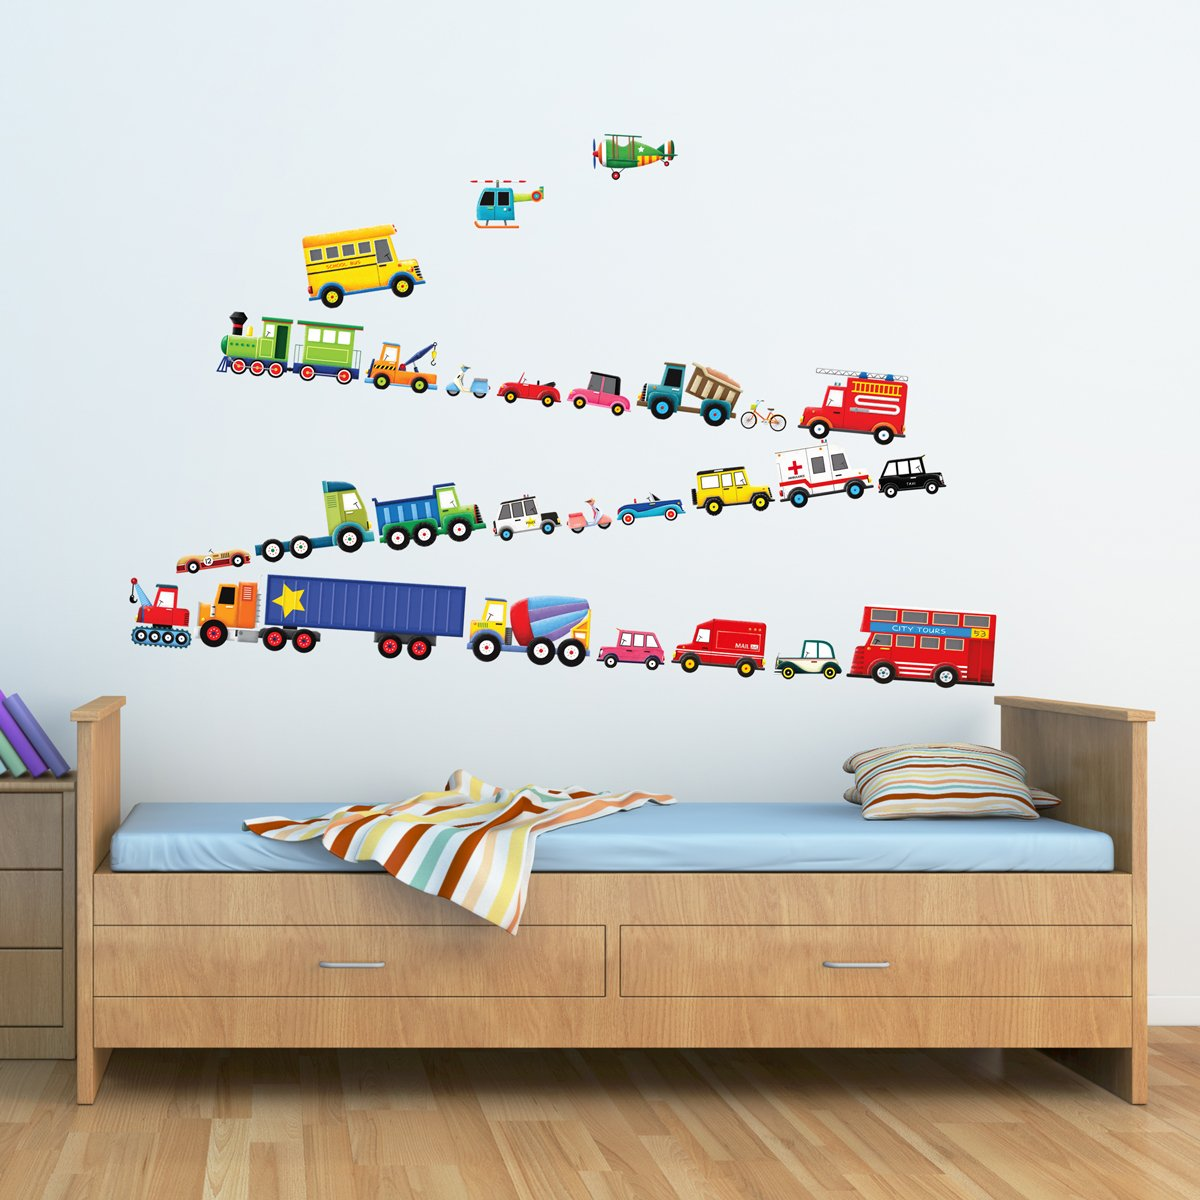 Amazon decowall dw 1605 27 transports kids wall decals wall amazon decowall dw 1605 27 transports kids wall decals wall stickers peel and stick removable wall stickers for kids nursery bedroom living room baby amipublicfo Gallery